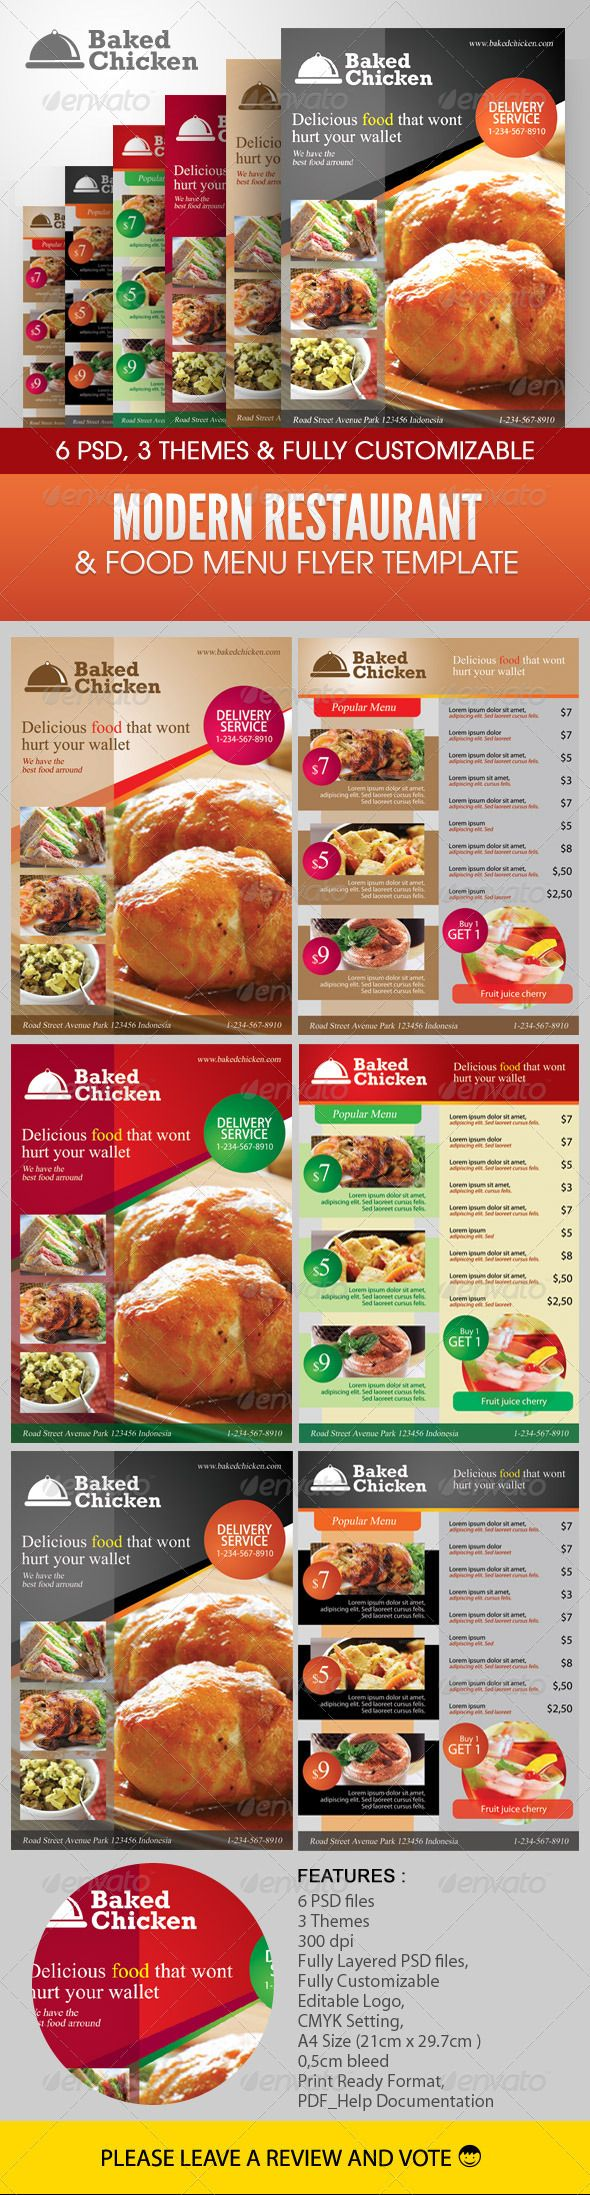 17 images about Flyer and menus – Restaurant Flyers Templates